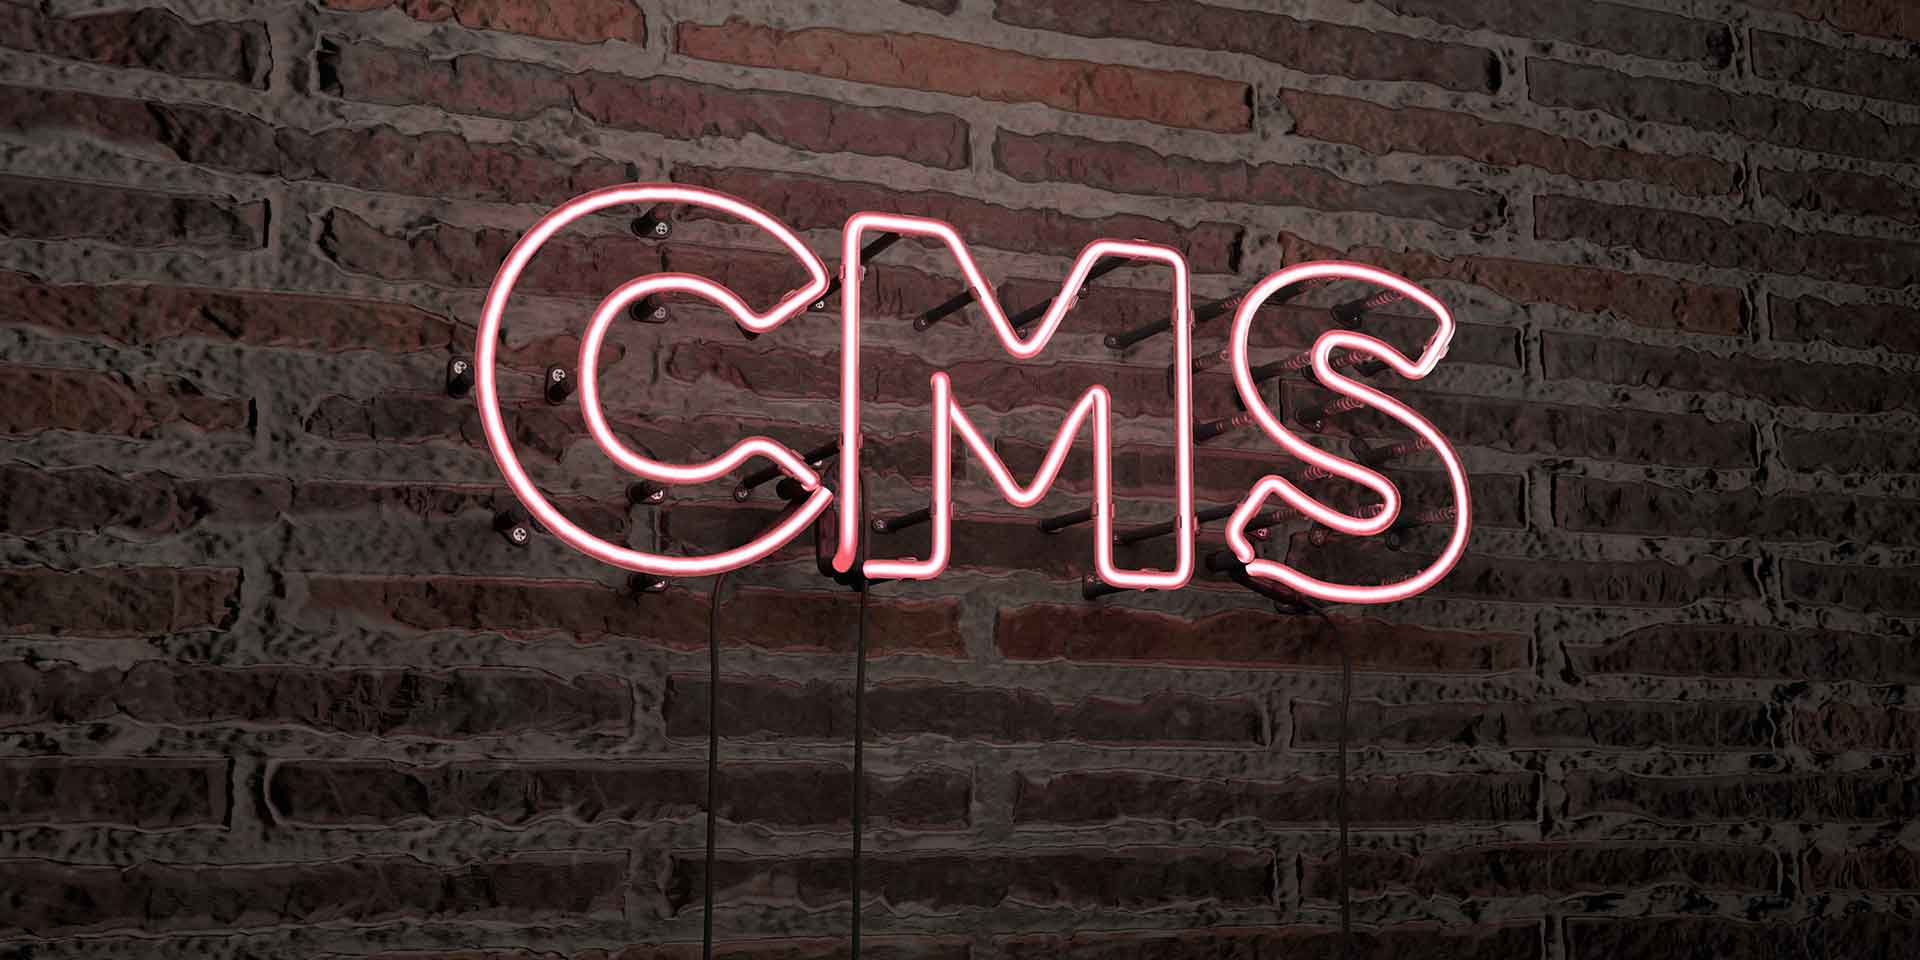 10 Best Content Management Systems (CMS) for Digital Marketing in 2019